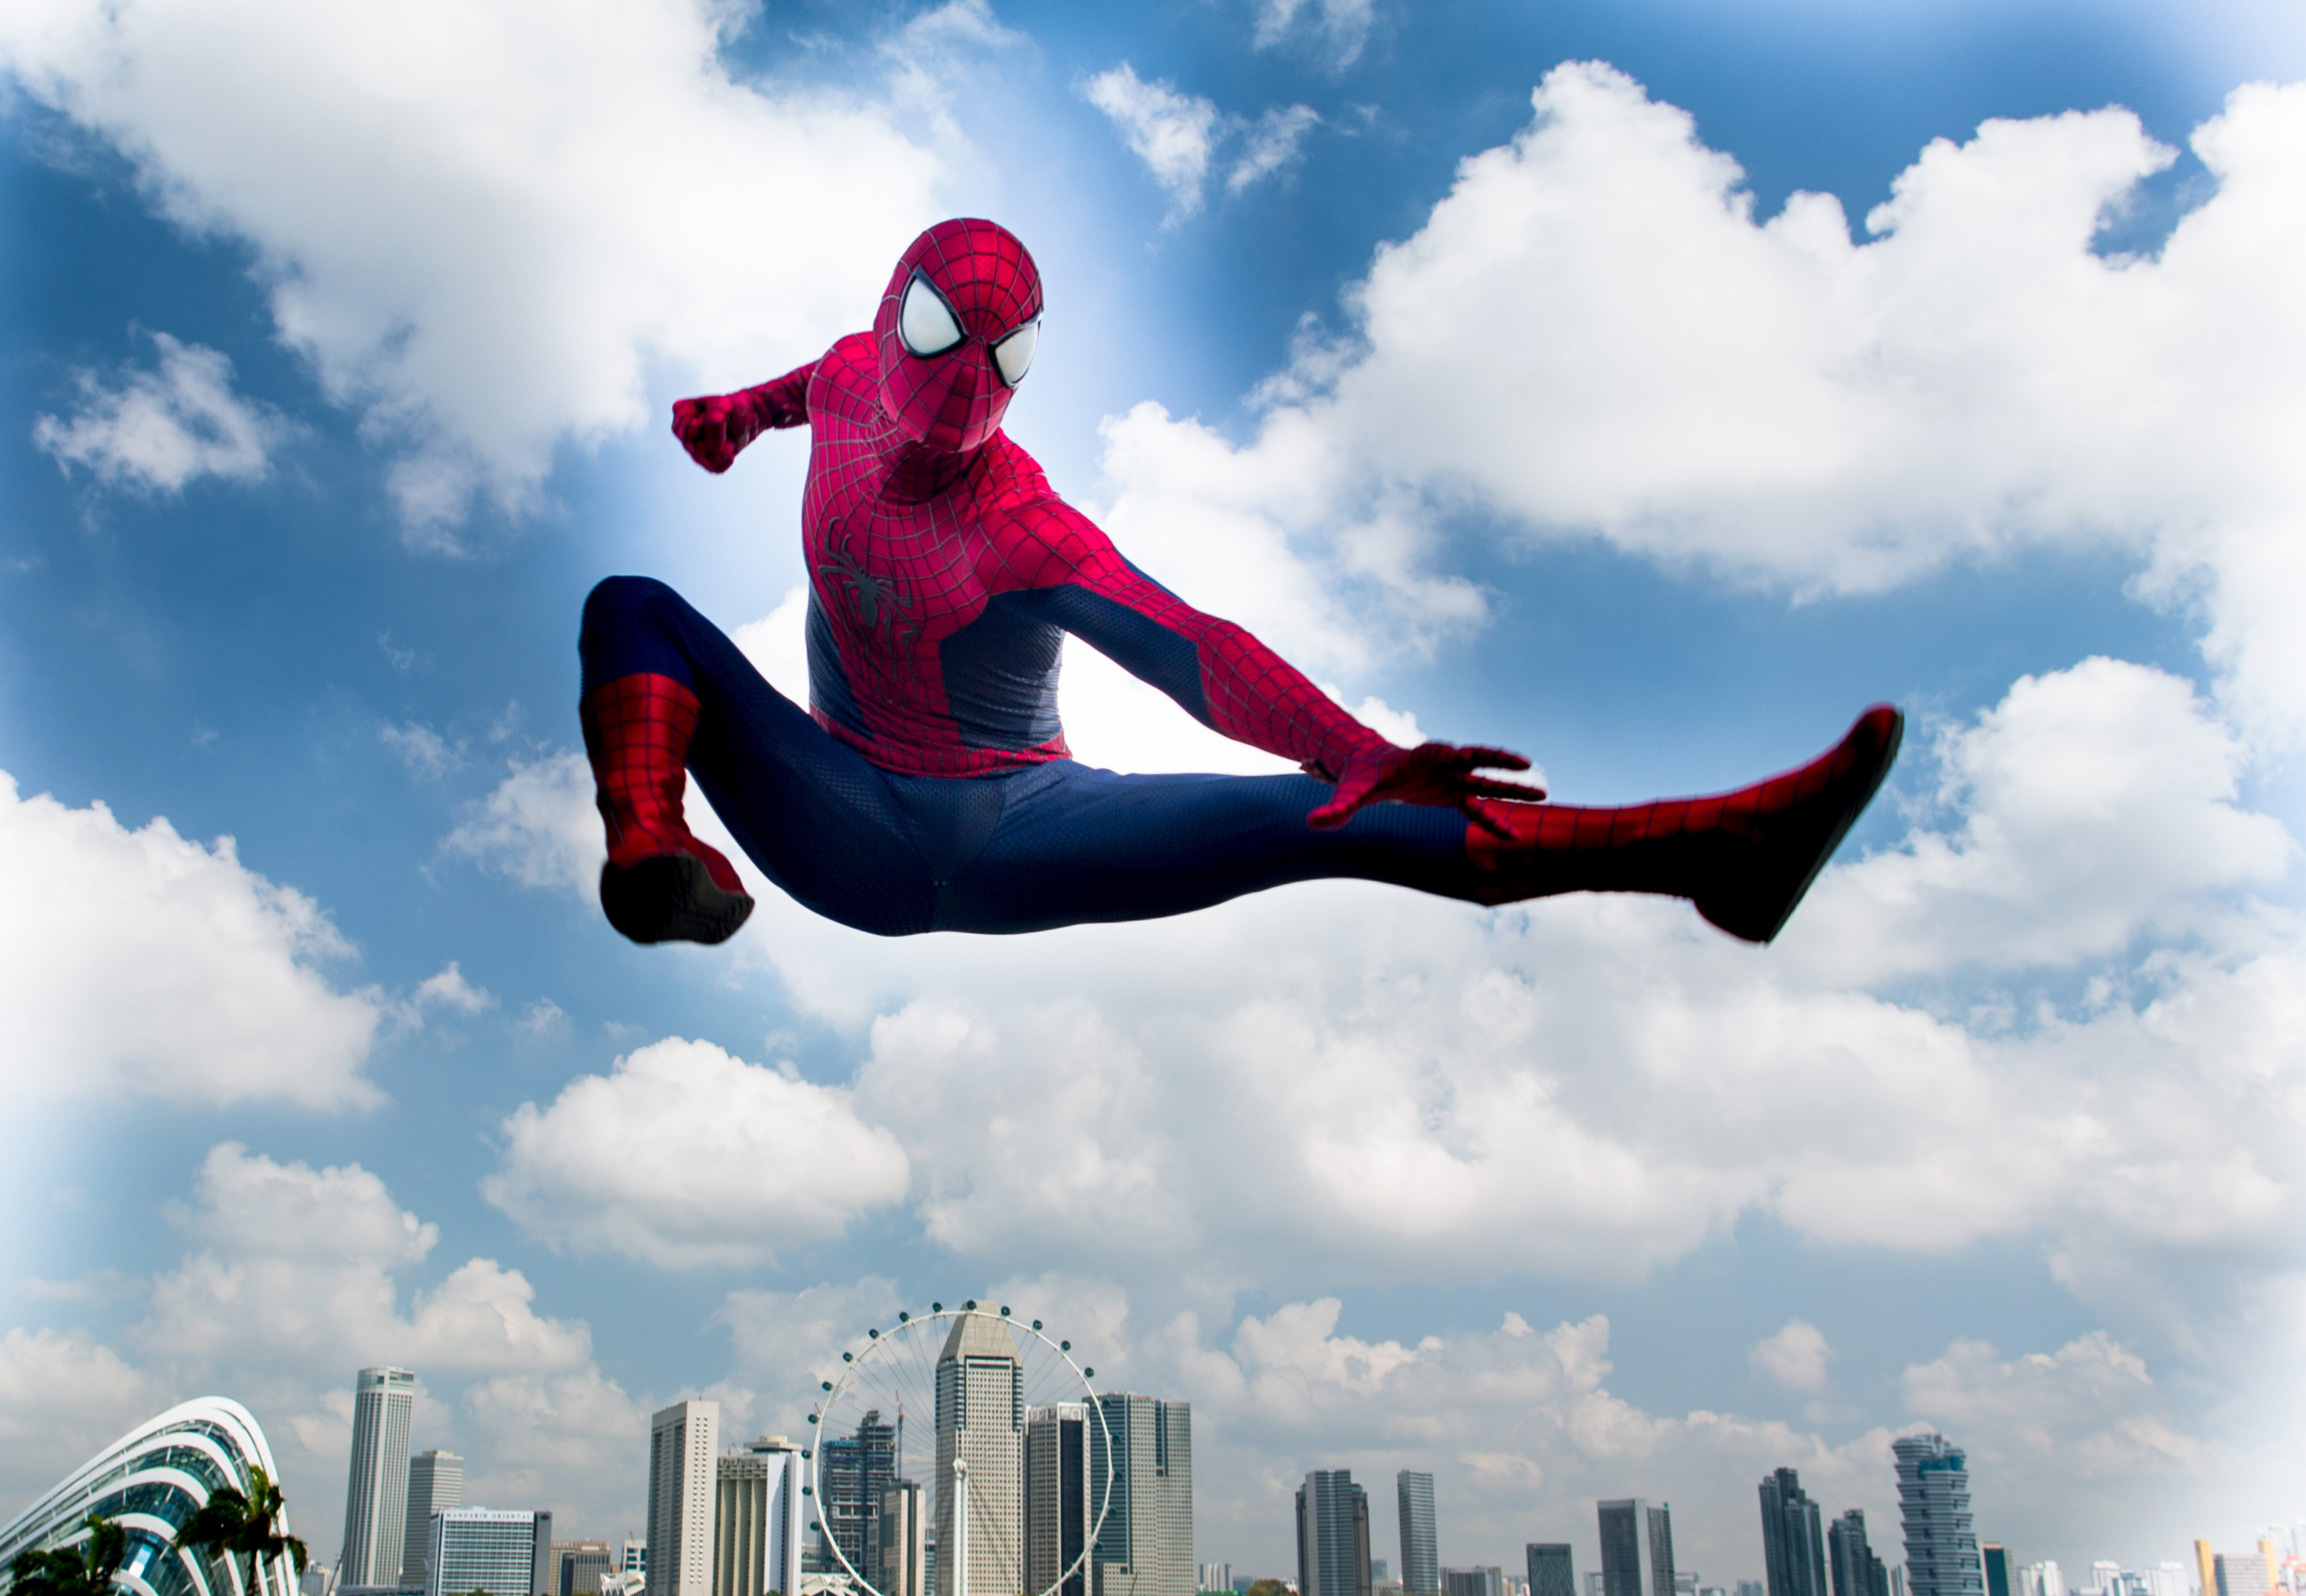 SINGAPORE - MARCH 27:  (EDITORS NOTE: This image has been retouched.) (EXCLUSIVE COVERAGE) Spider-Man explores Singapore duri